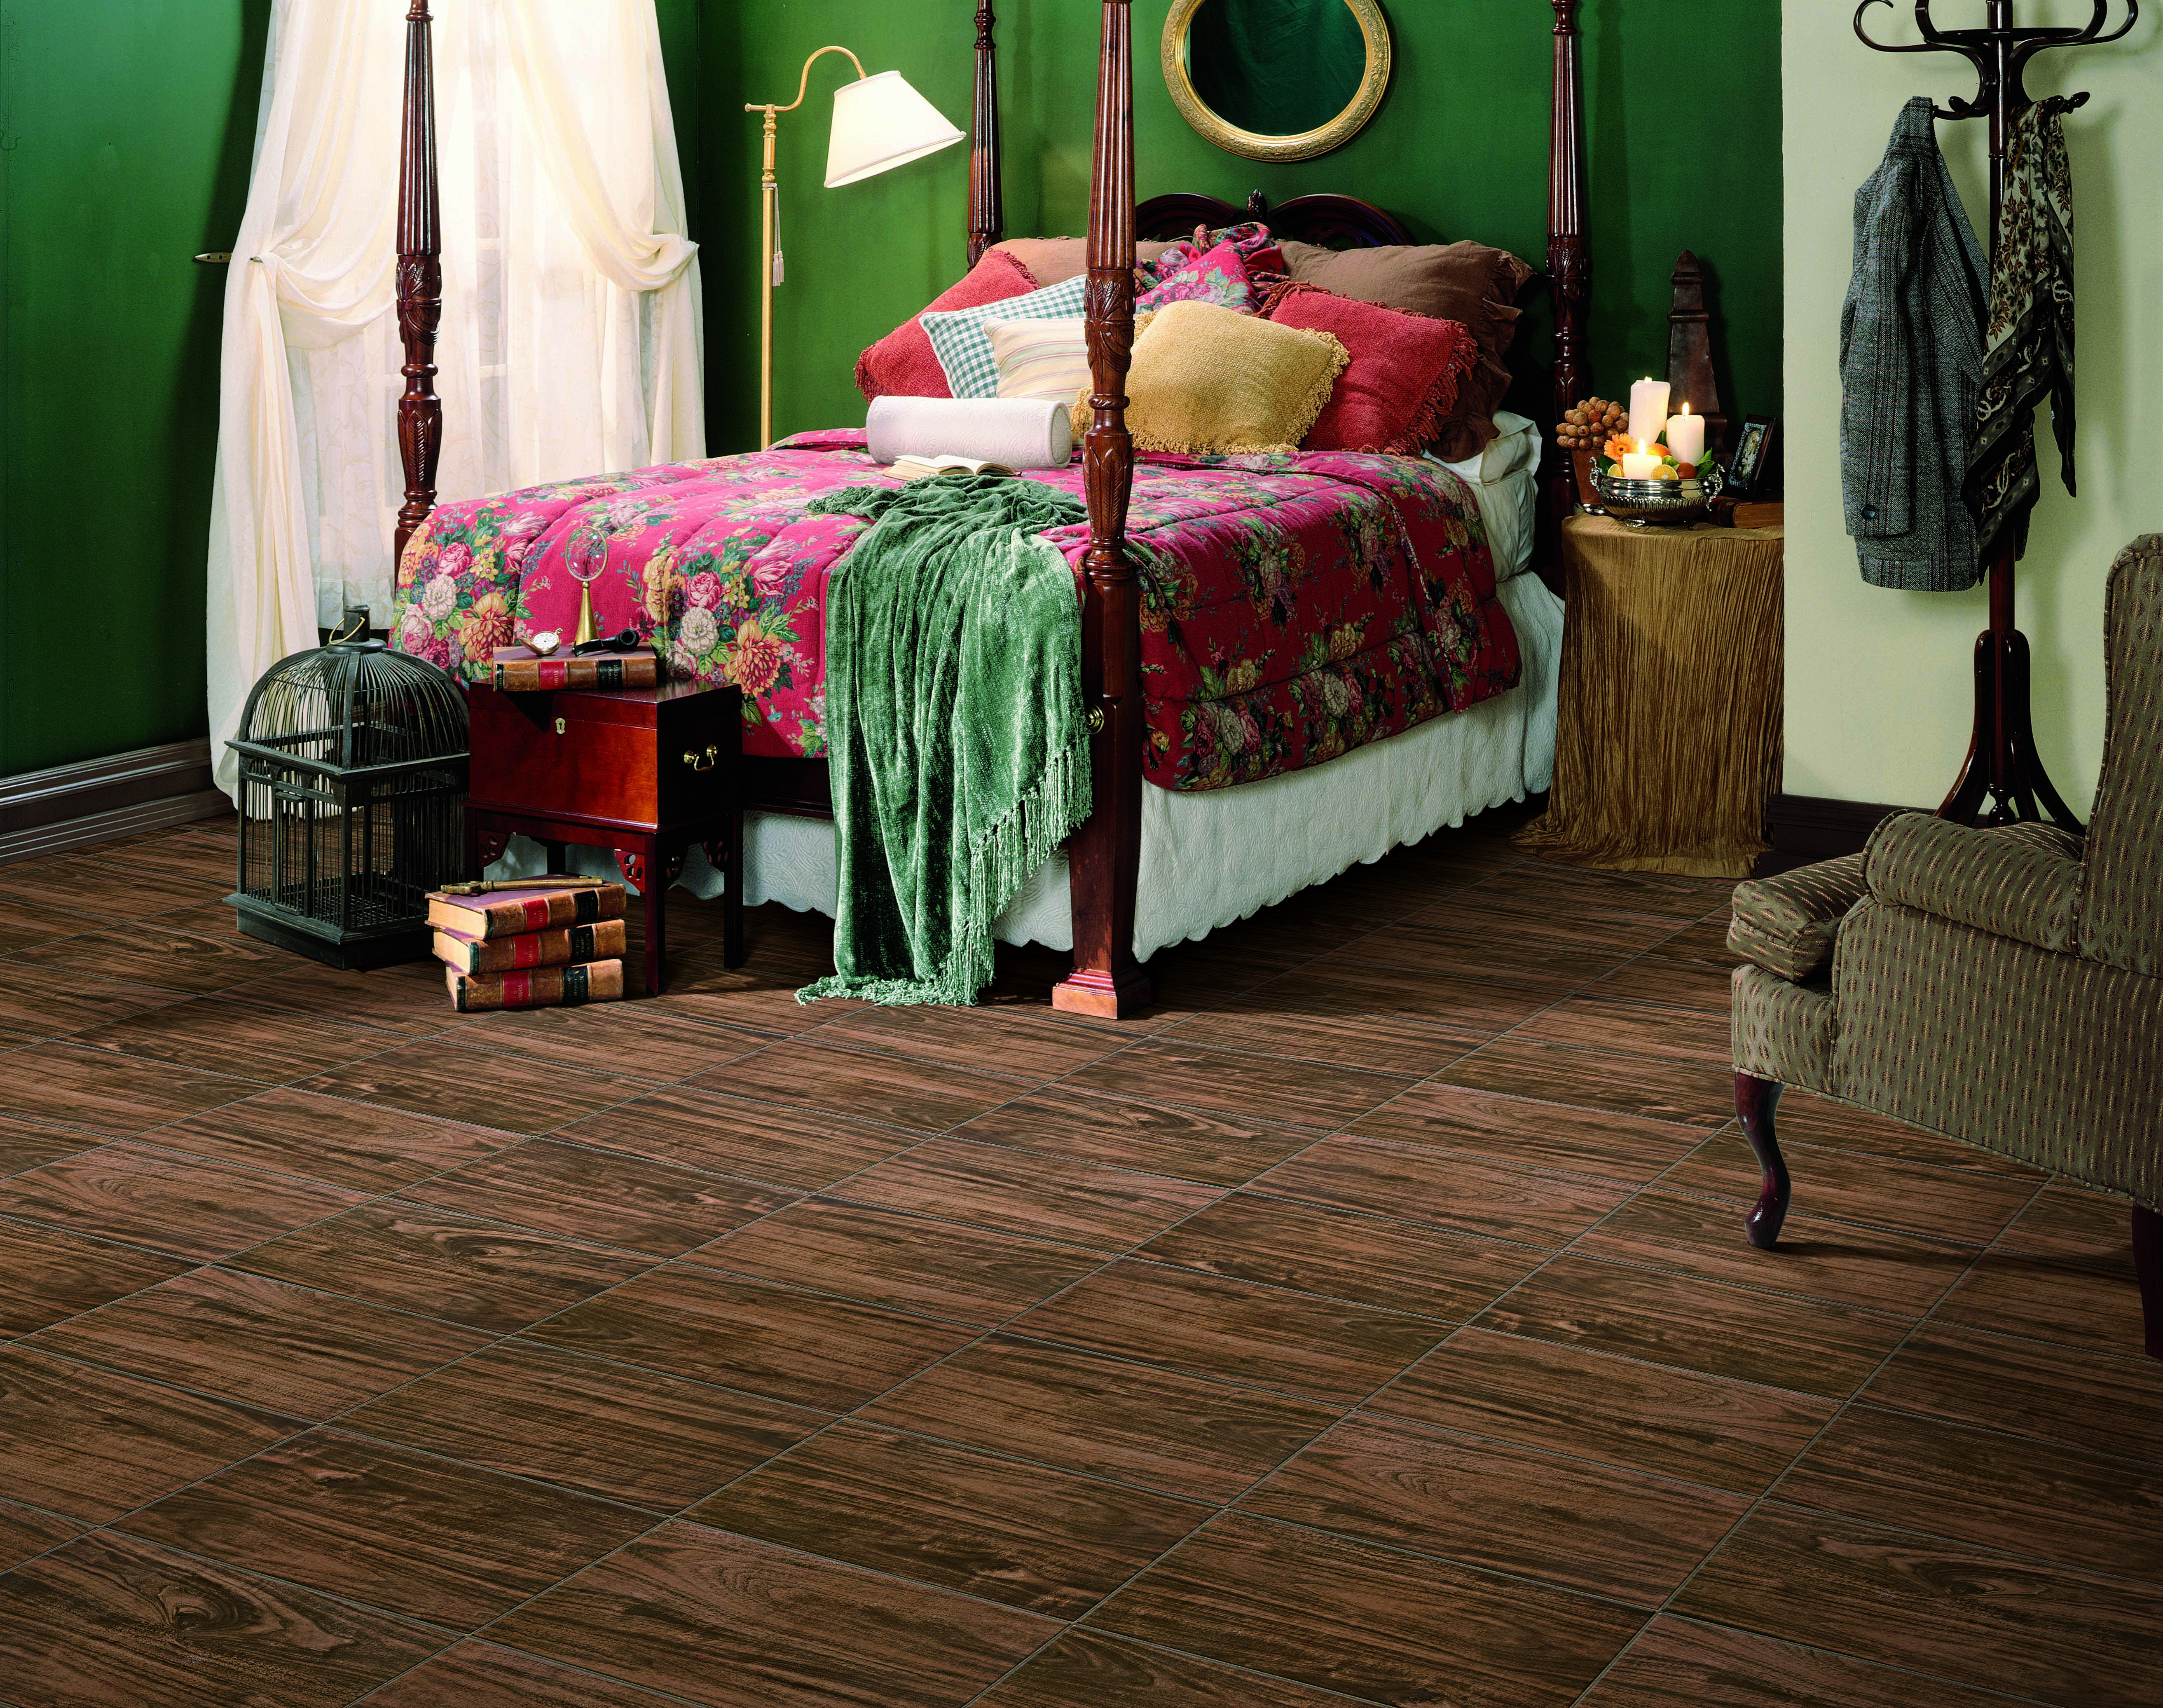 hardwood flooring grand junction co of teak floor tiles best of deck tiles wood best products teatro with teak floor tiles awesome teak hardwood flooring walker zanger s collection anteak salvaged